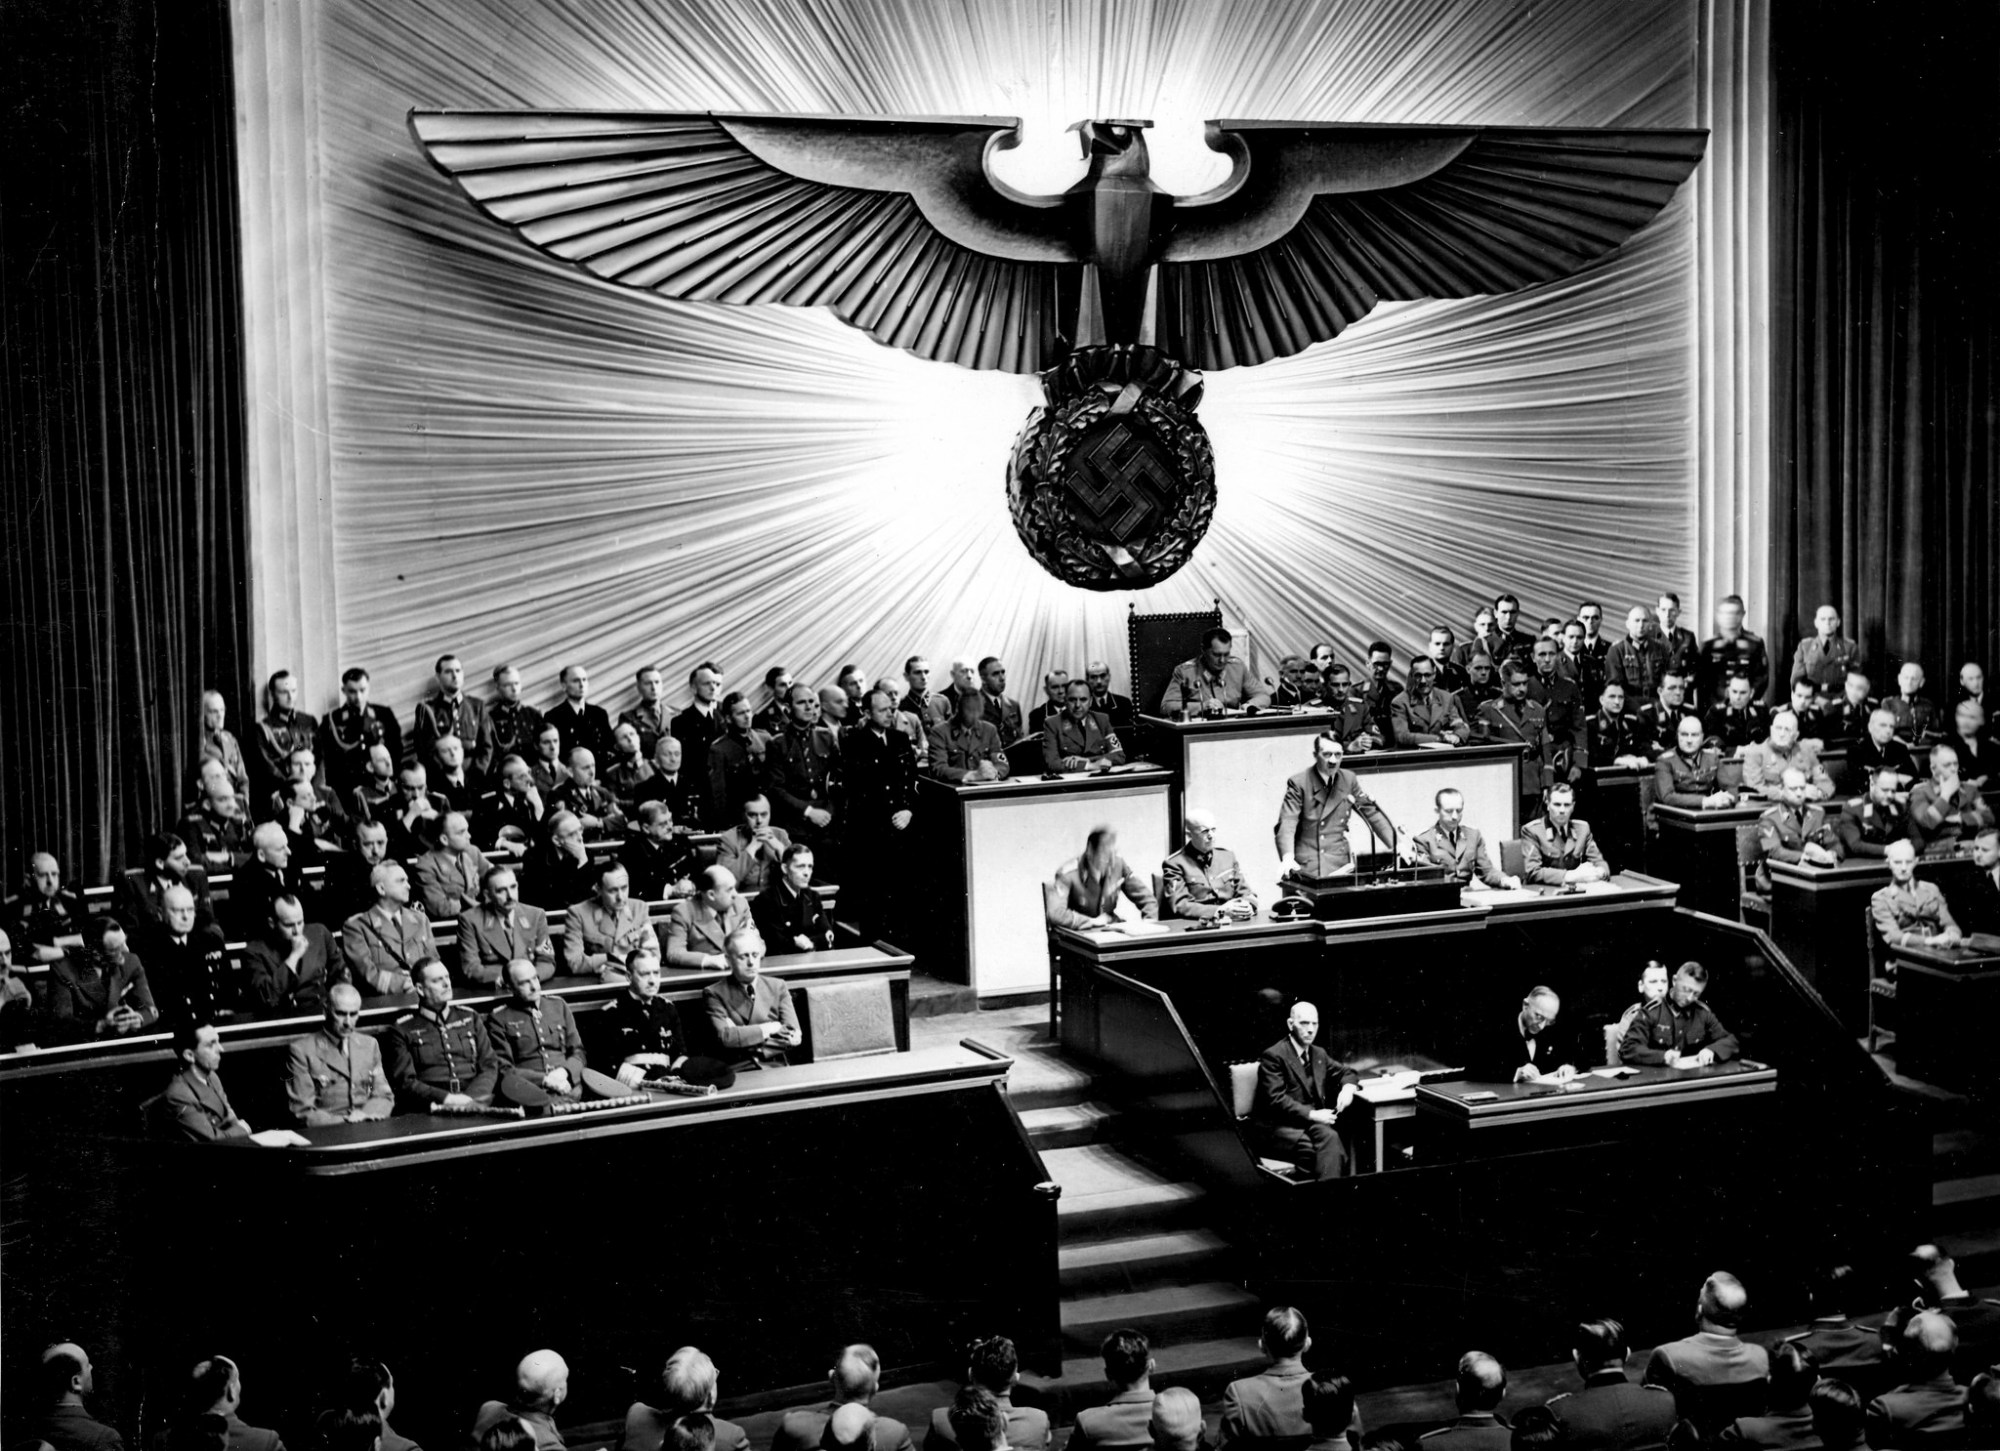 hight resolution of hitler announcing the declaration of war against the united states to the reichstag on 11 december 1941